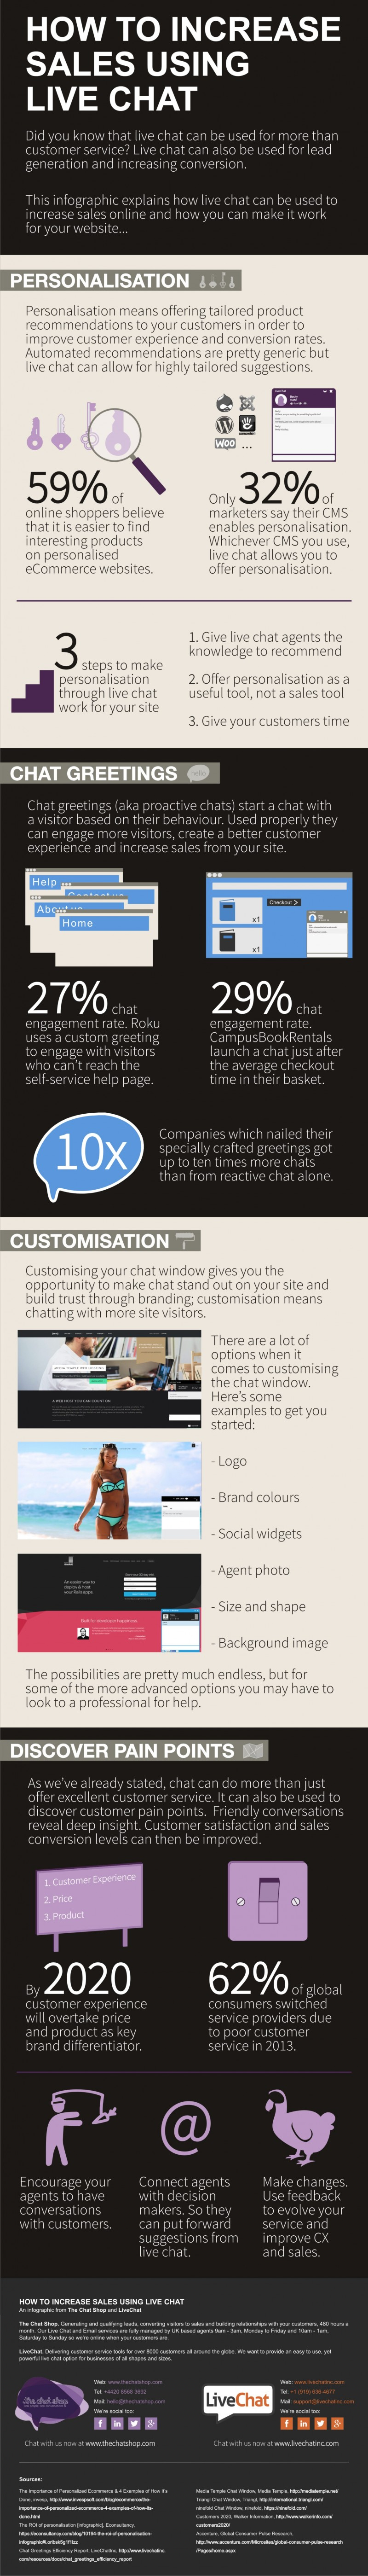 How to increase sales using live chat infographic